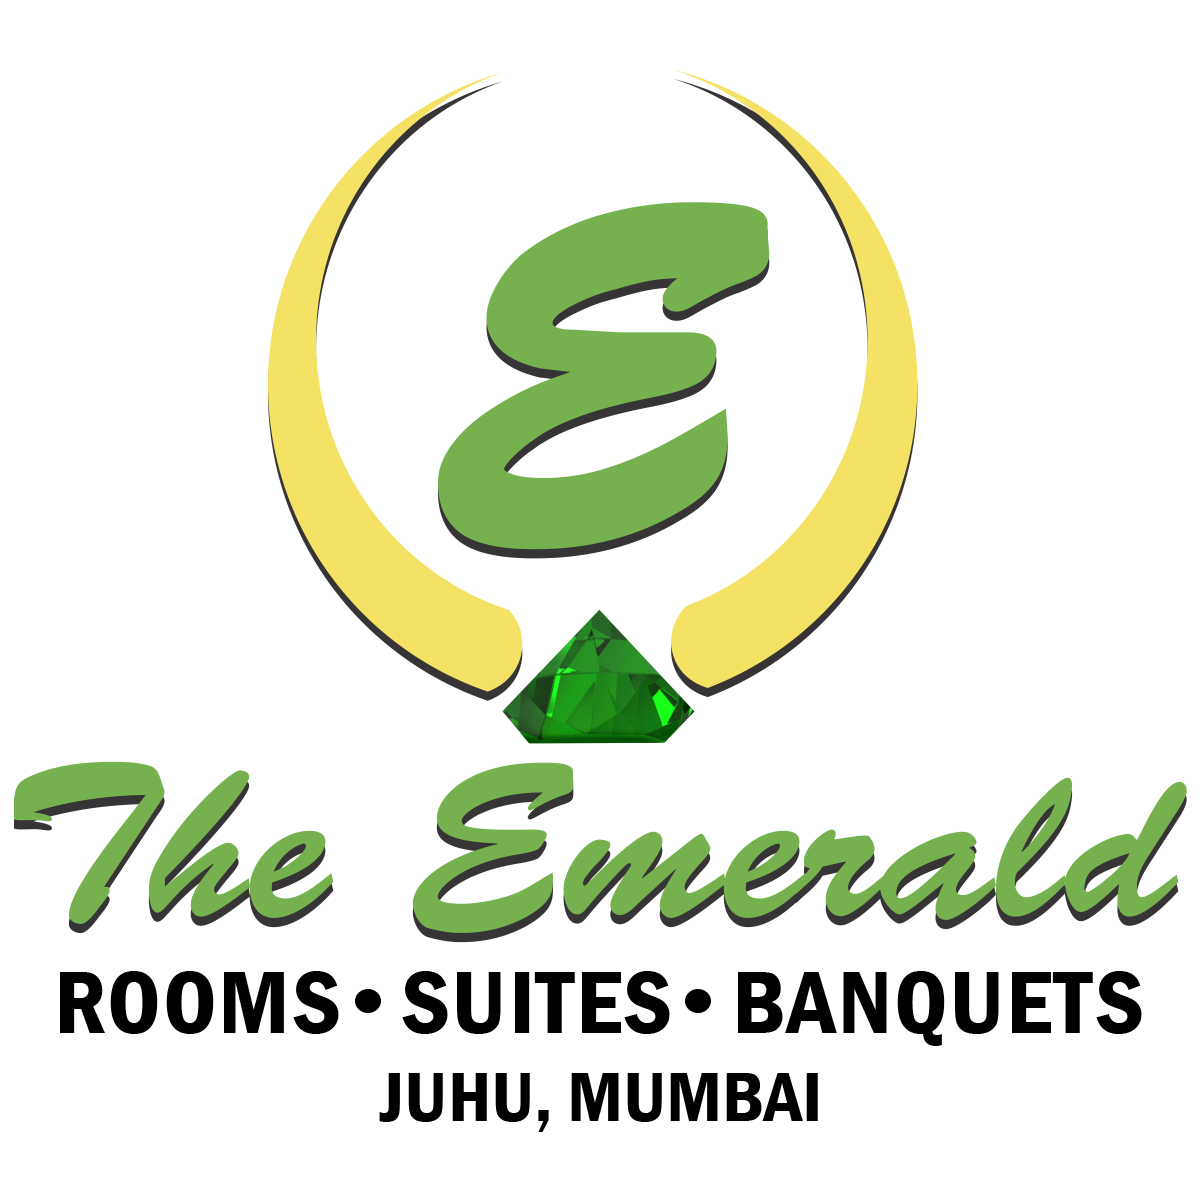 The Emerald Hotel & Service Apartments Coliving Company